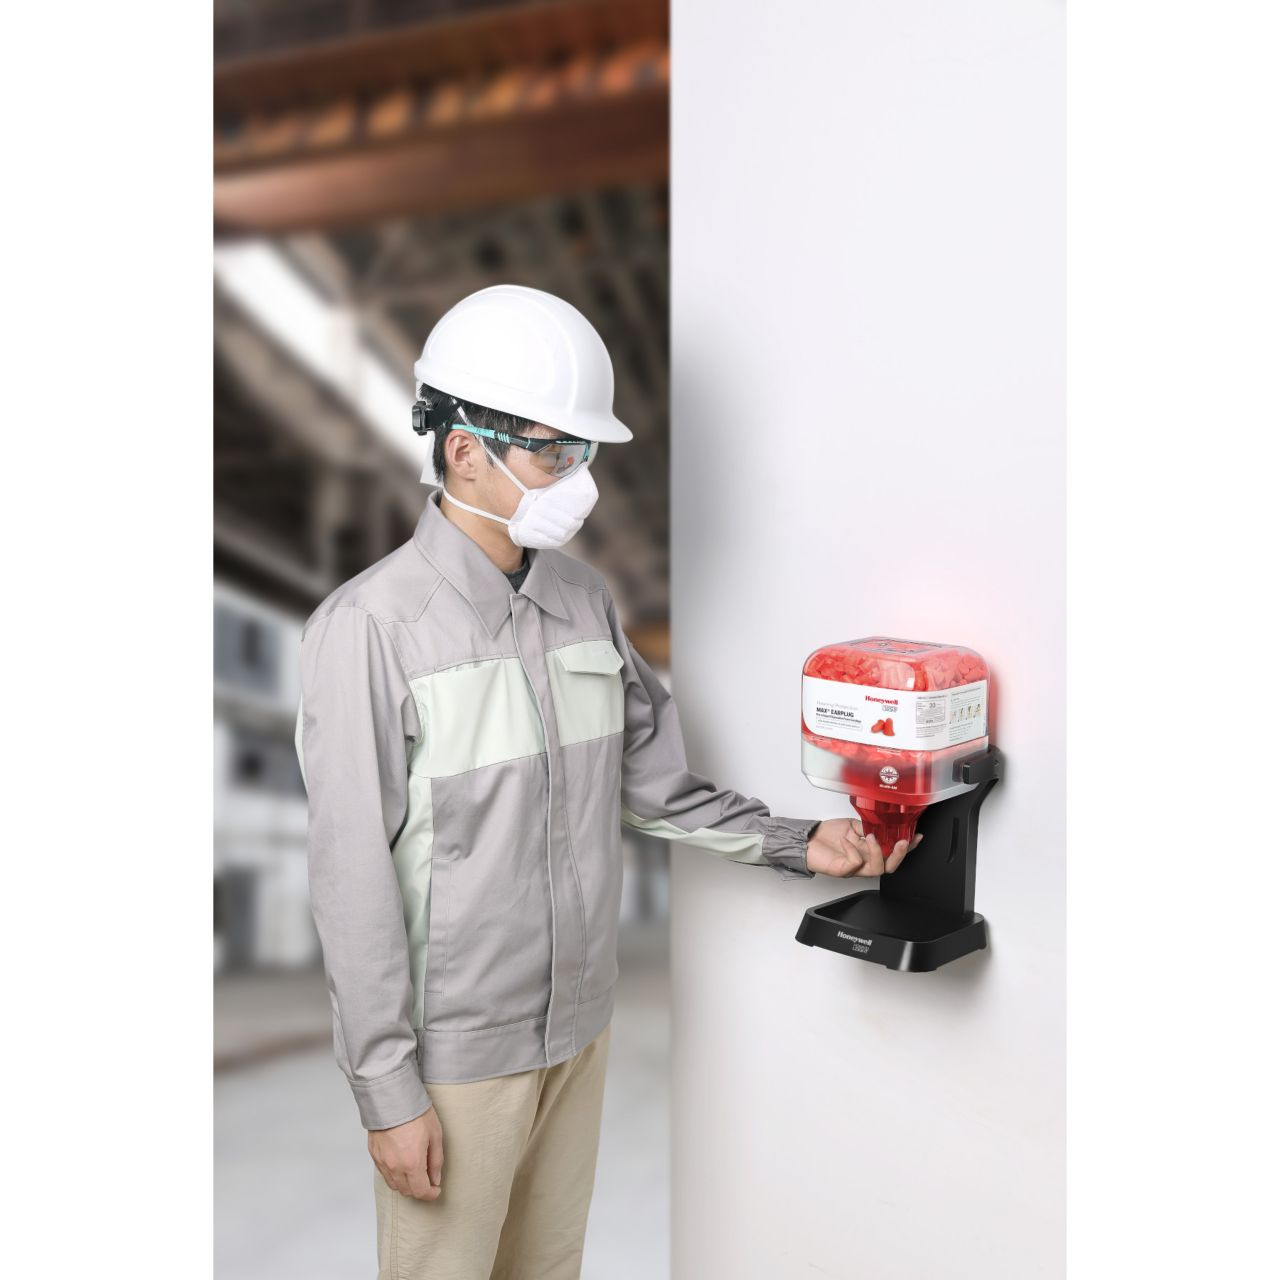 sps-safety-antimicrobial-hl400-dispensers3